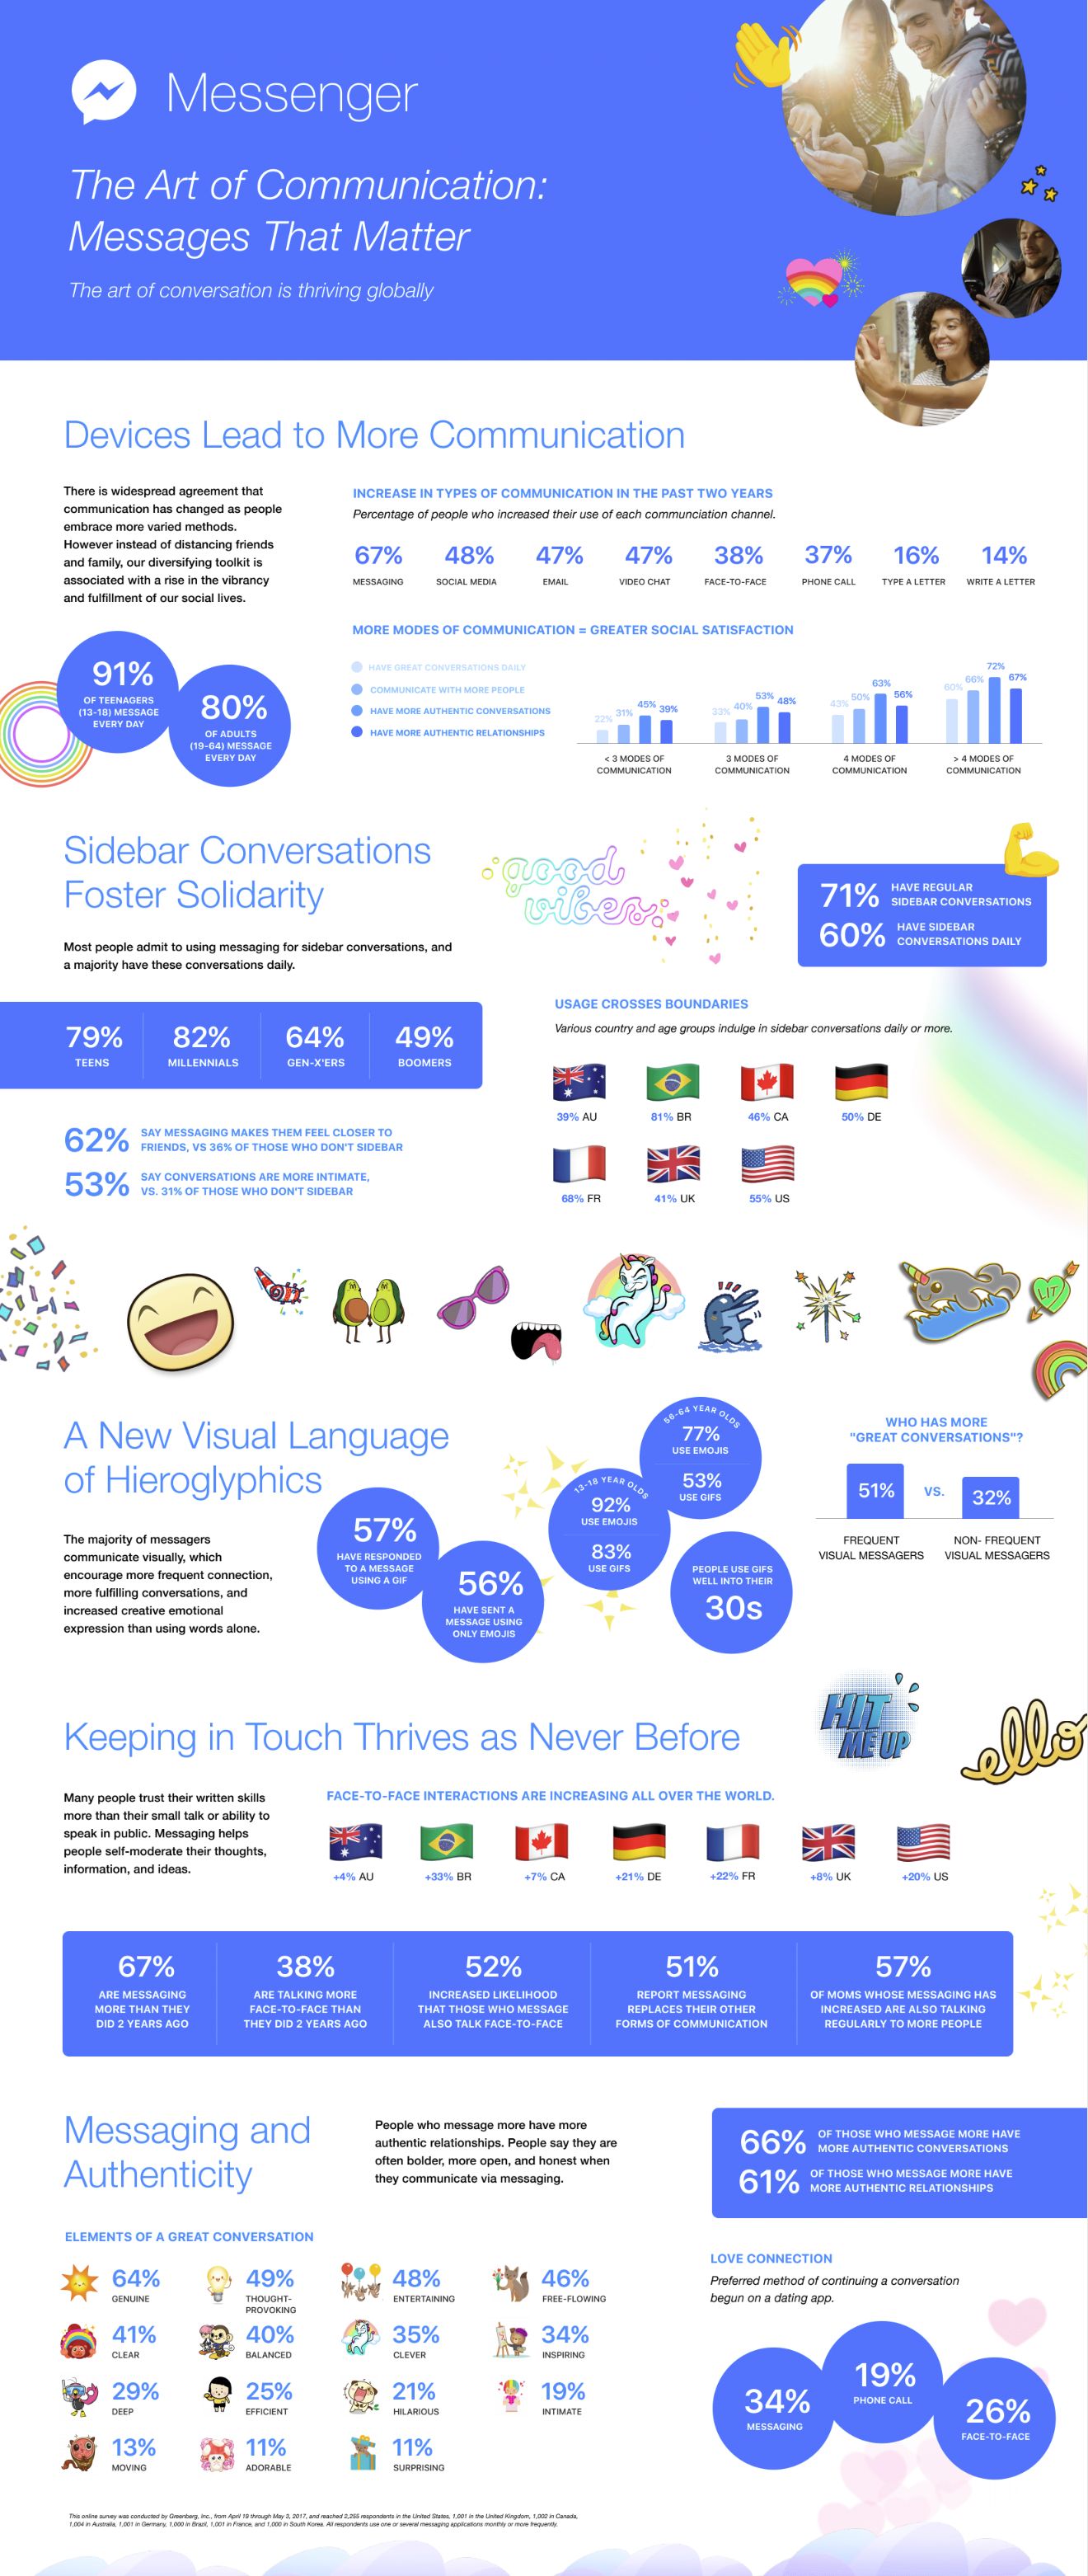 Facebook Releases New Data on the Growth and Adoption of Messaging [Infographic]   Social Media Today